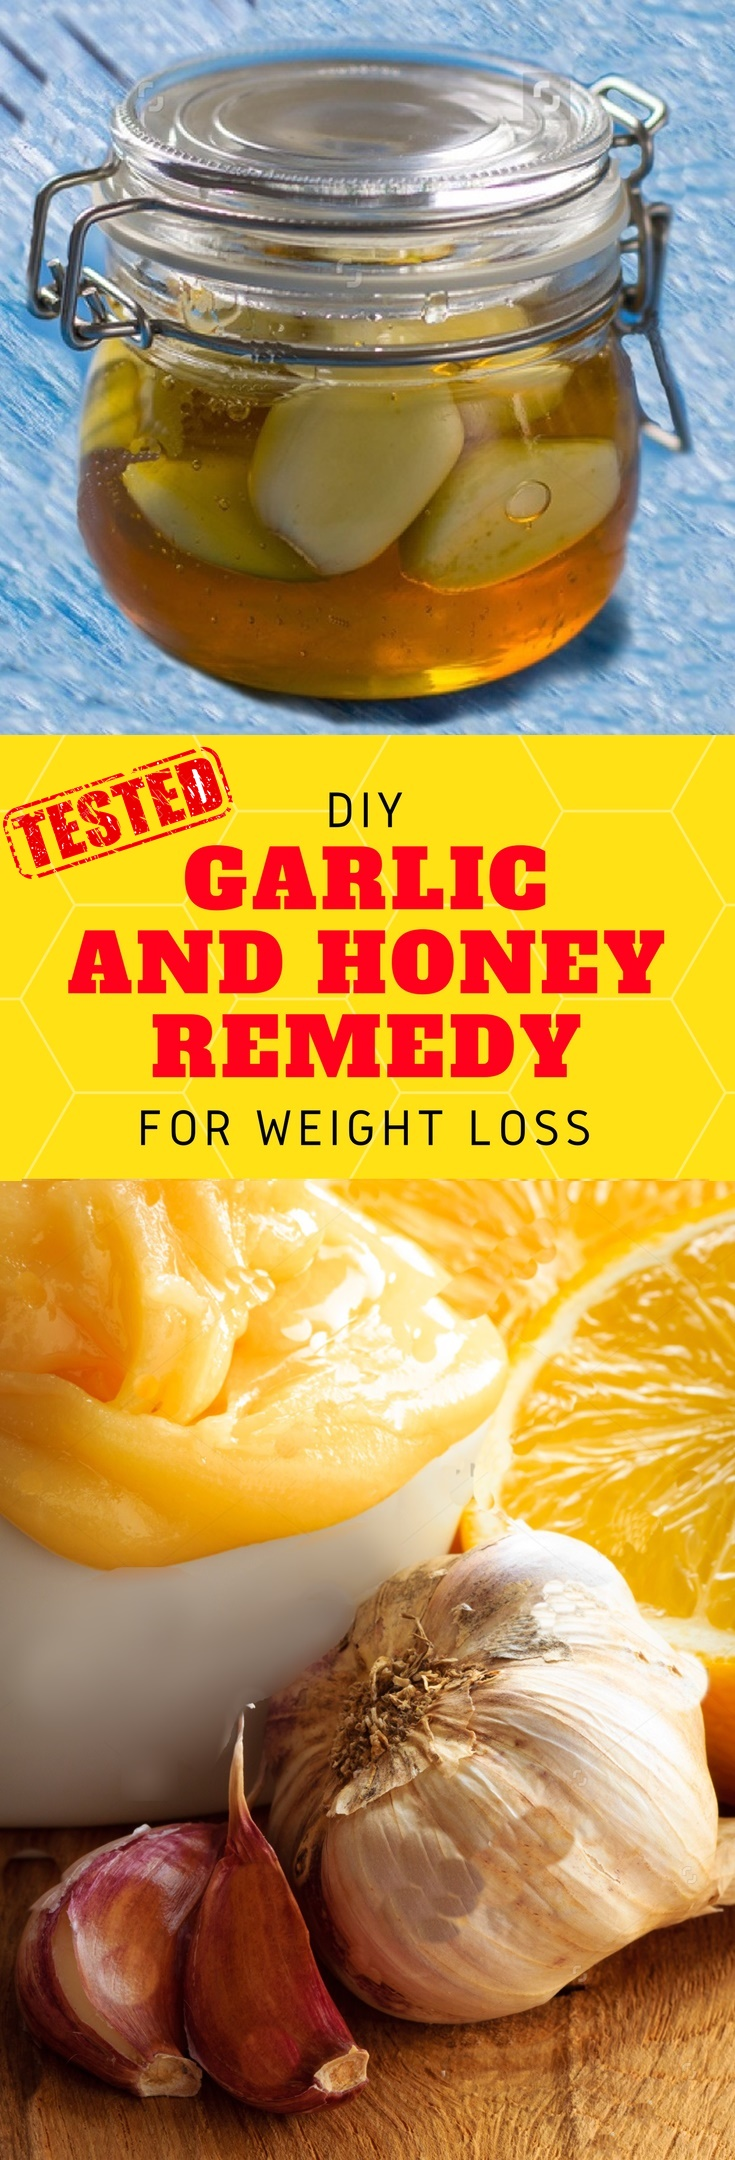 How to lose weight with honey and ginger How to lose weight with honey and ginger new images